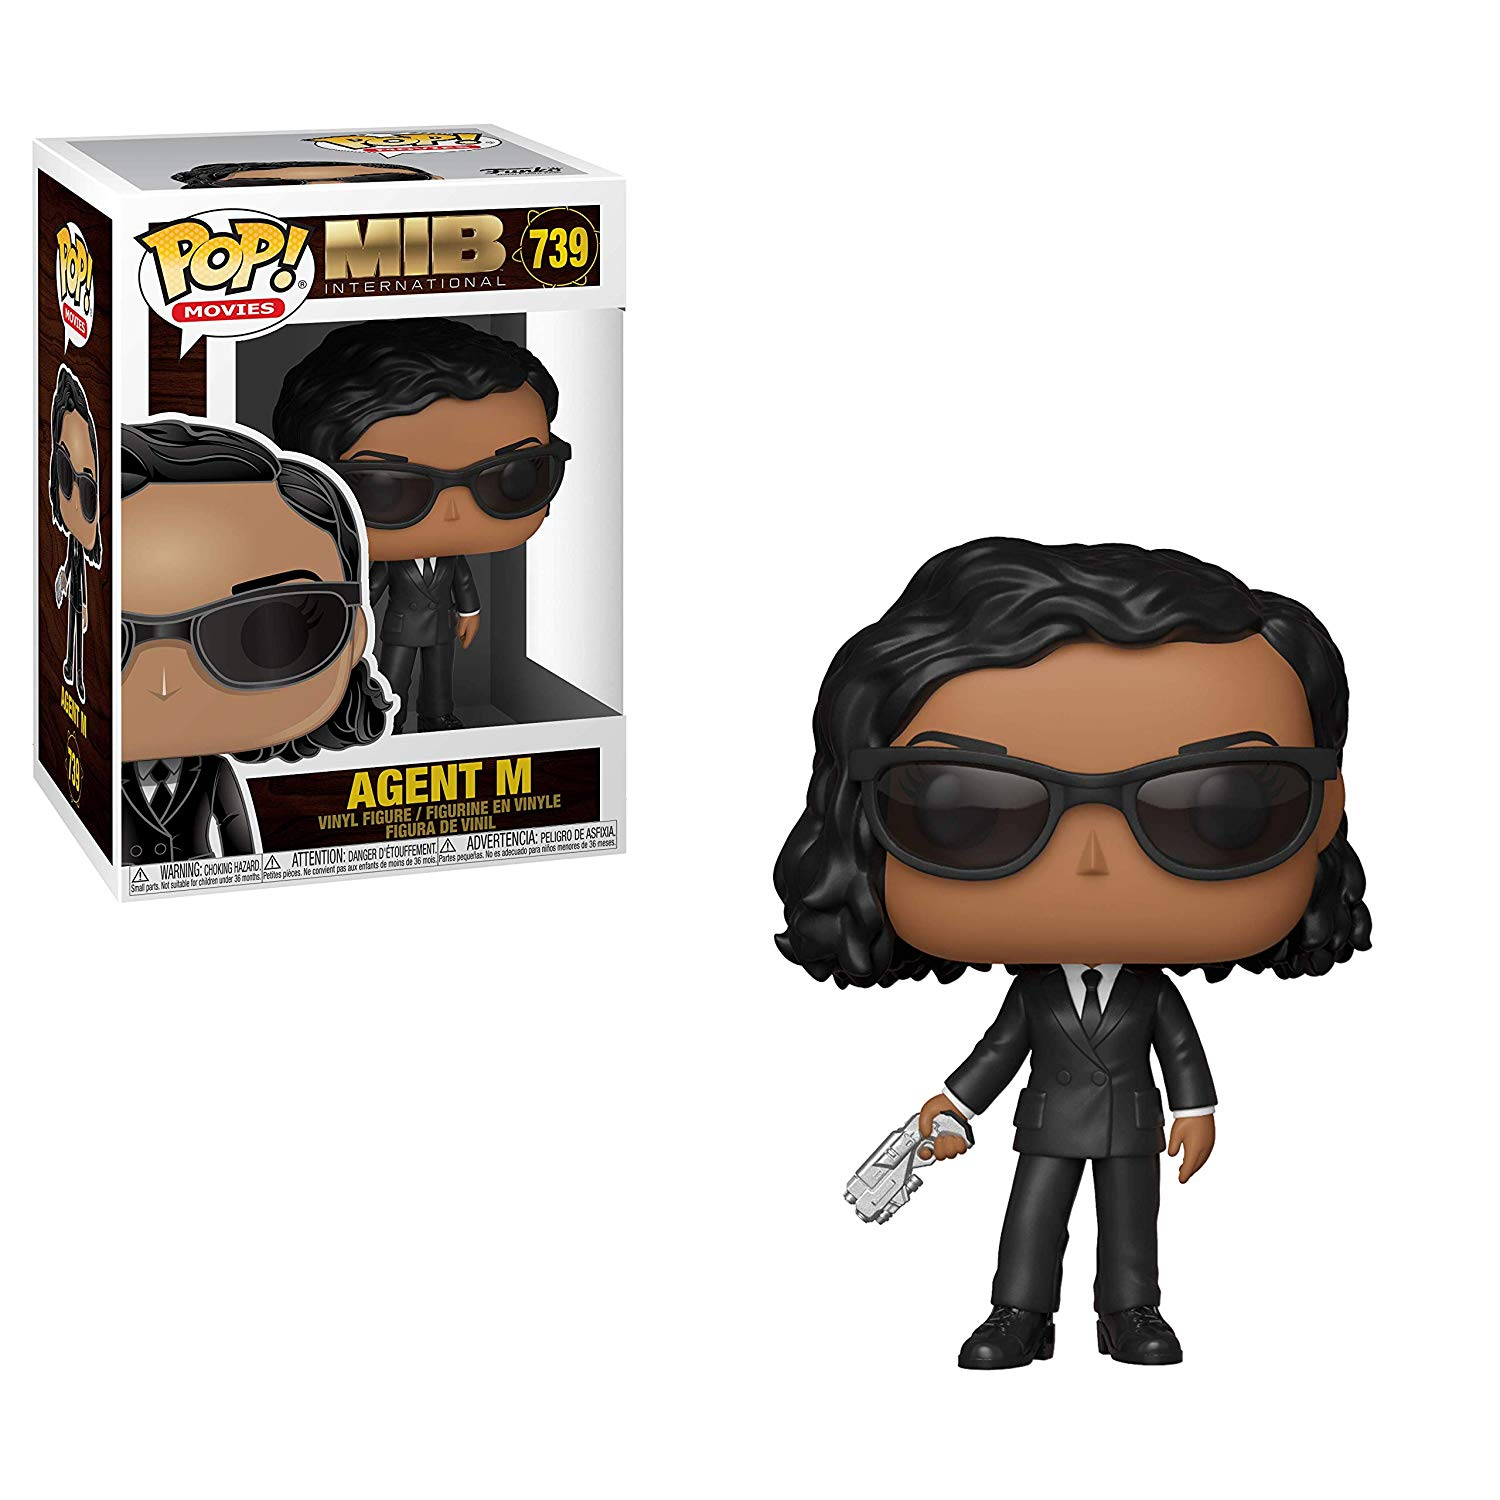 Pop! Movies MIB International Vinyl Figure Agent M #739